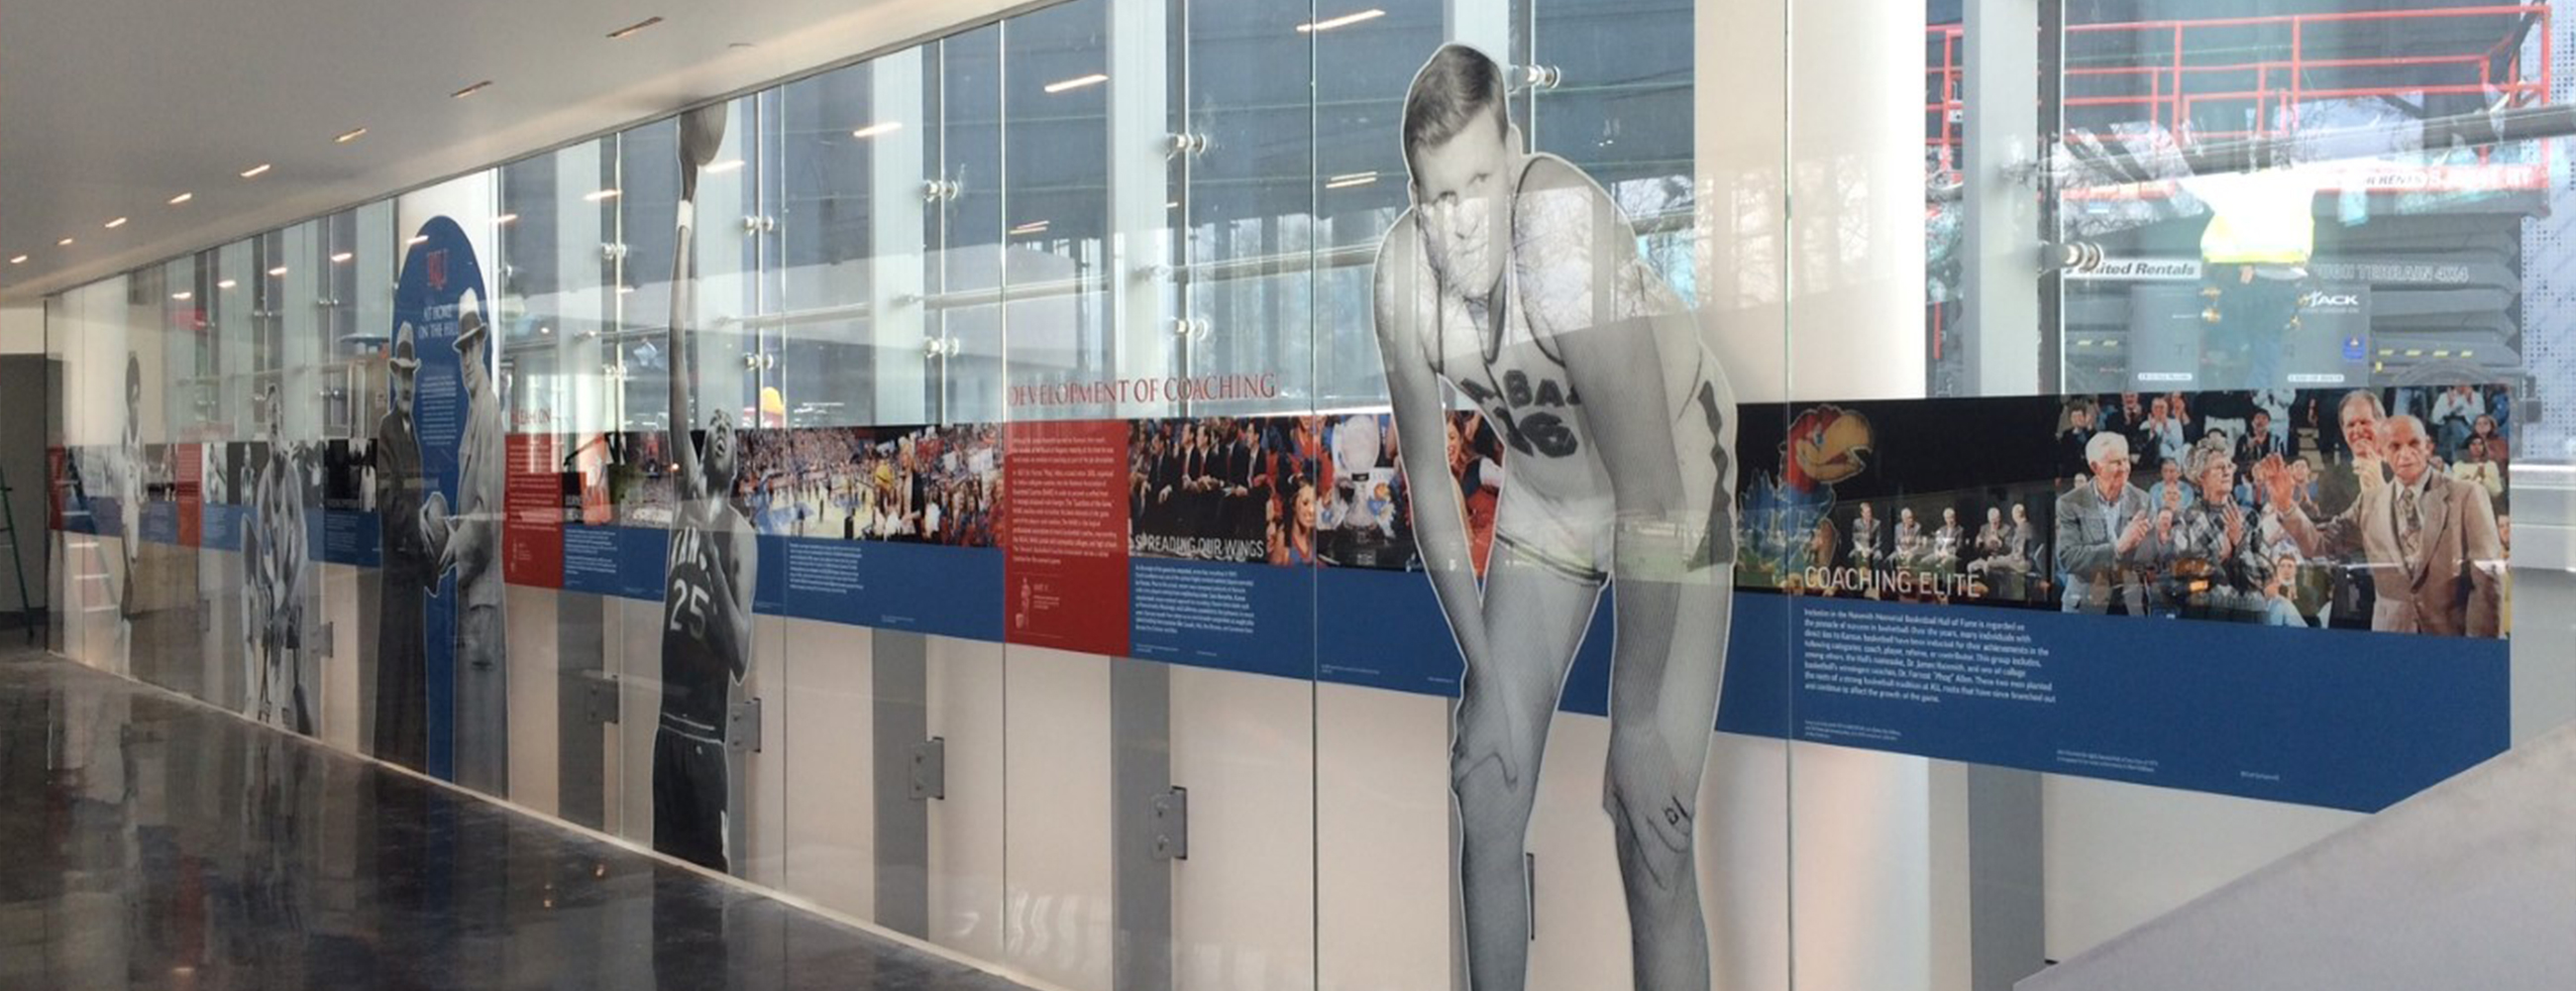 Inside Kansas University, a view of the glass mural depicting images and copy from the history of basketball.